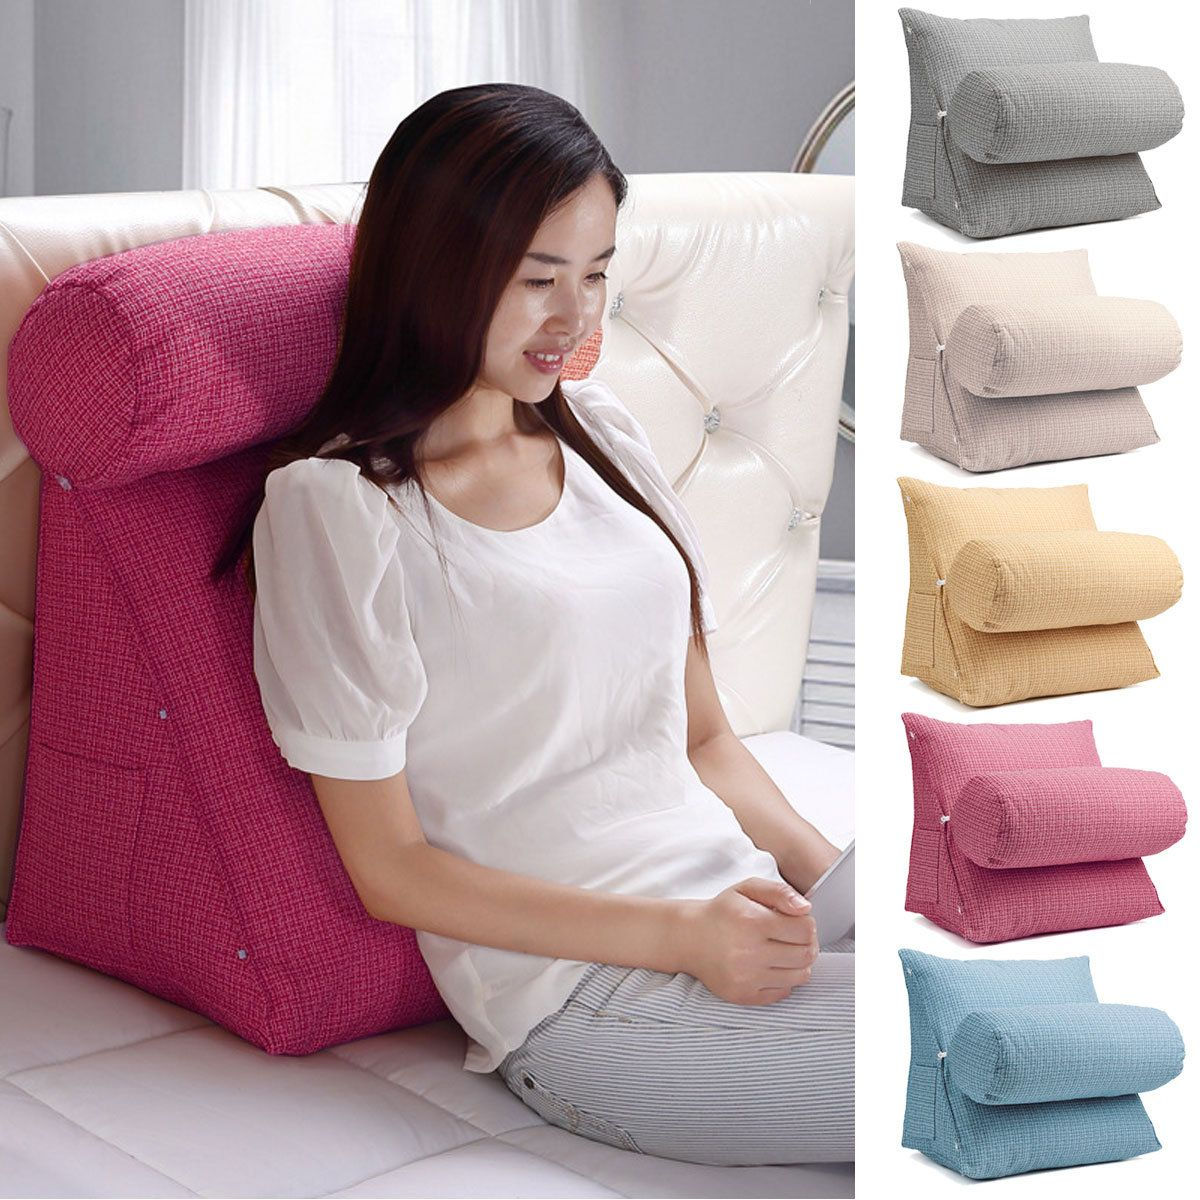 Adjustable Sofa Bed Chair Office Rest Neck Support Wedge Back Lumbar Pillow NEW